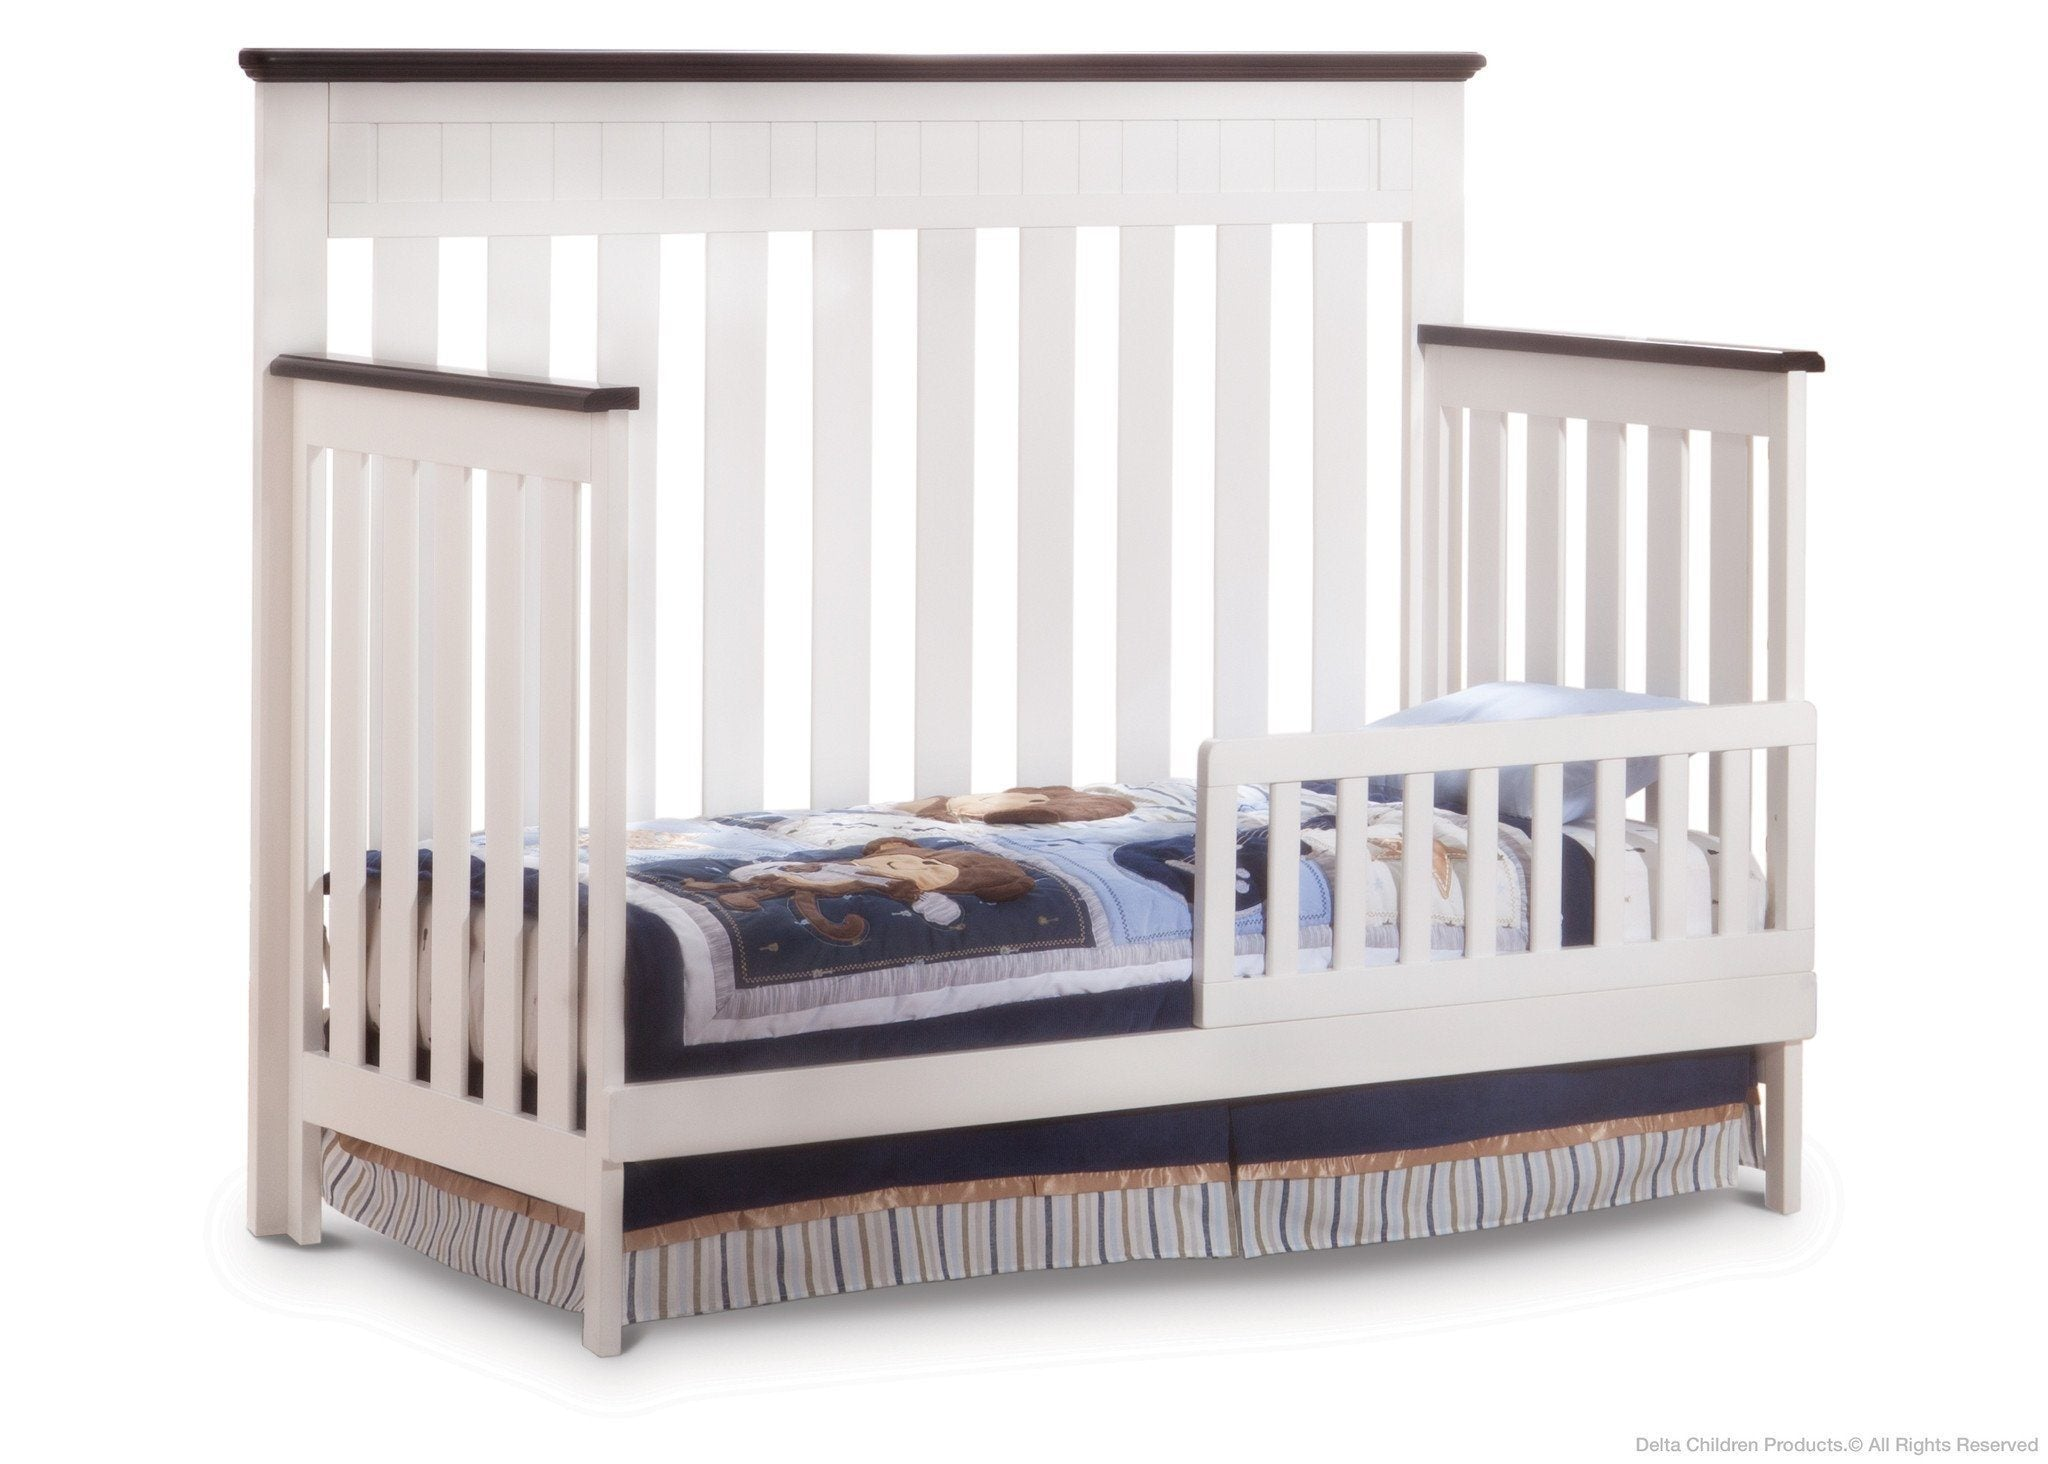 Delta Children White Ambiance/Dark Chocolate (127) Chalet 4-in-1, Toddler Bed Conversion with Toddler Guard Rail c3c